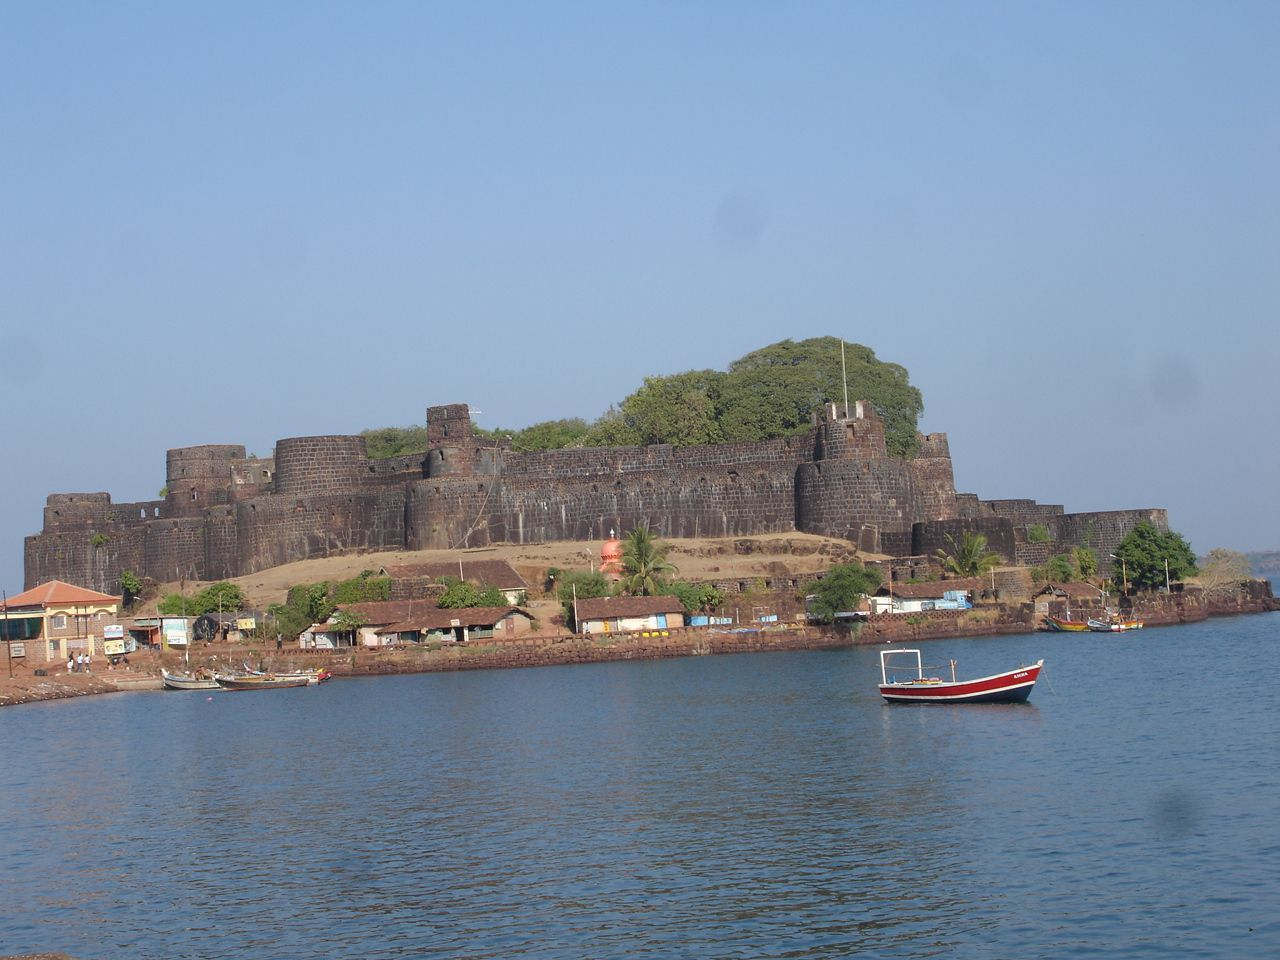 An ode to history a photo montage vijaydurg fort - Shikhar Vedh Kokan Sindhudurg Safari Scuba Diving Snorkeling Event On 18 20 April 2014